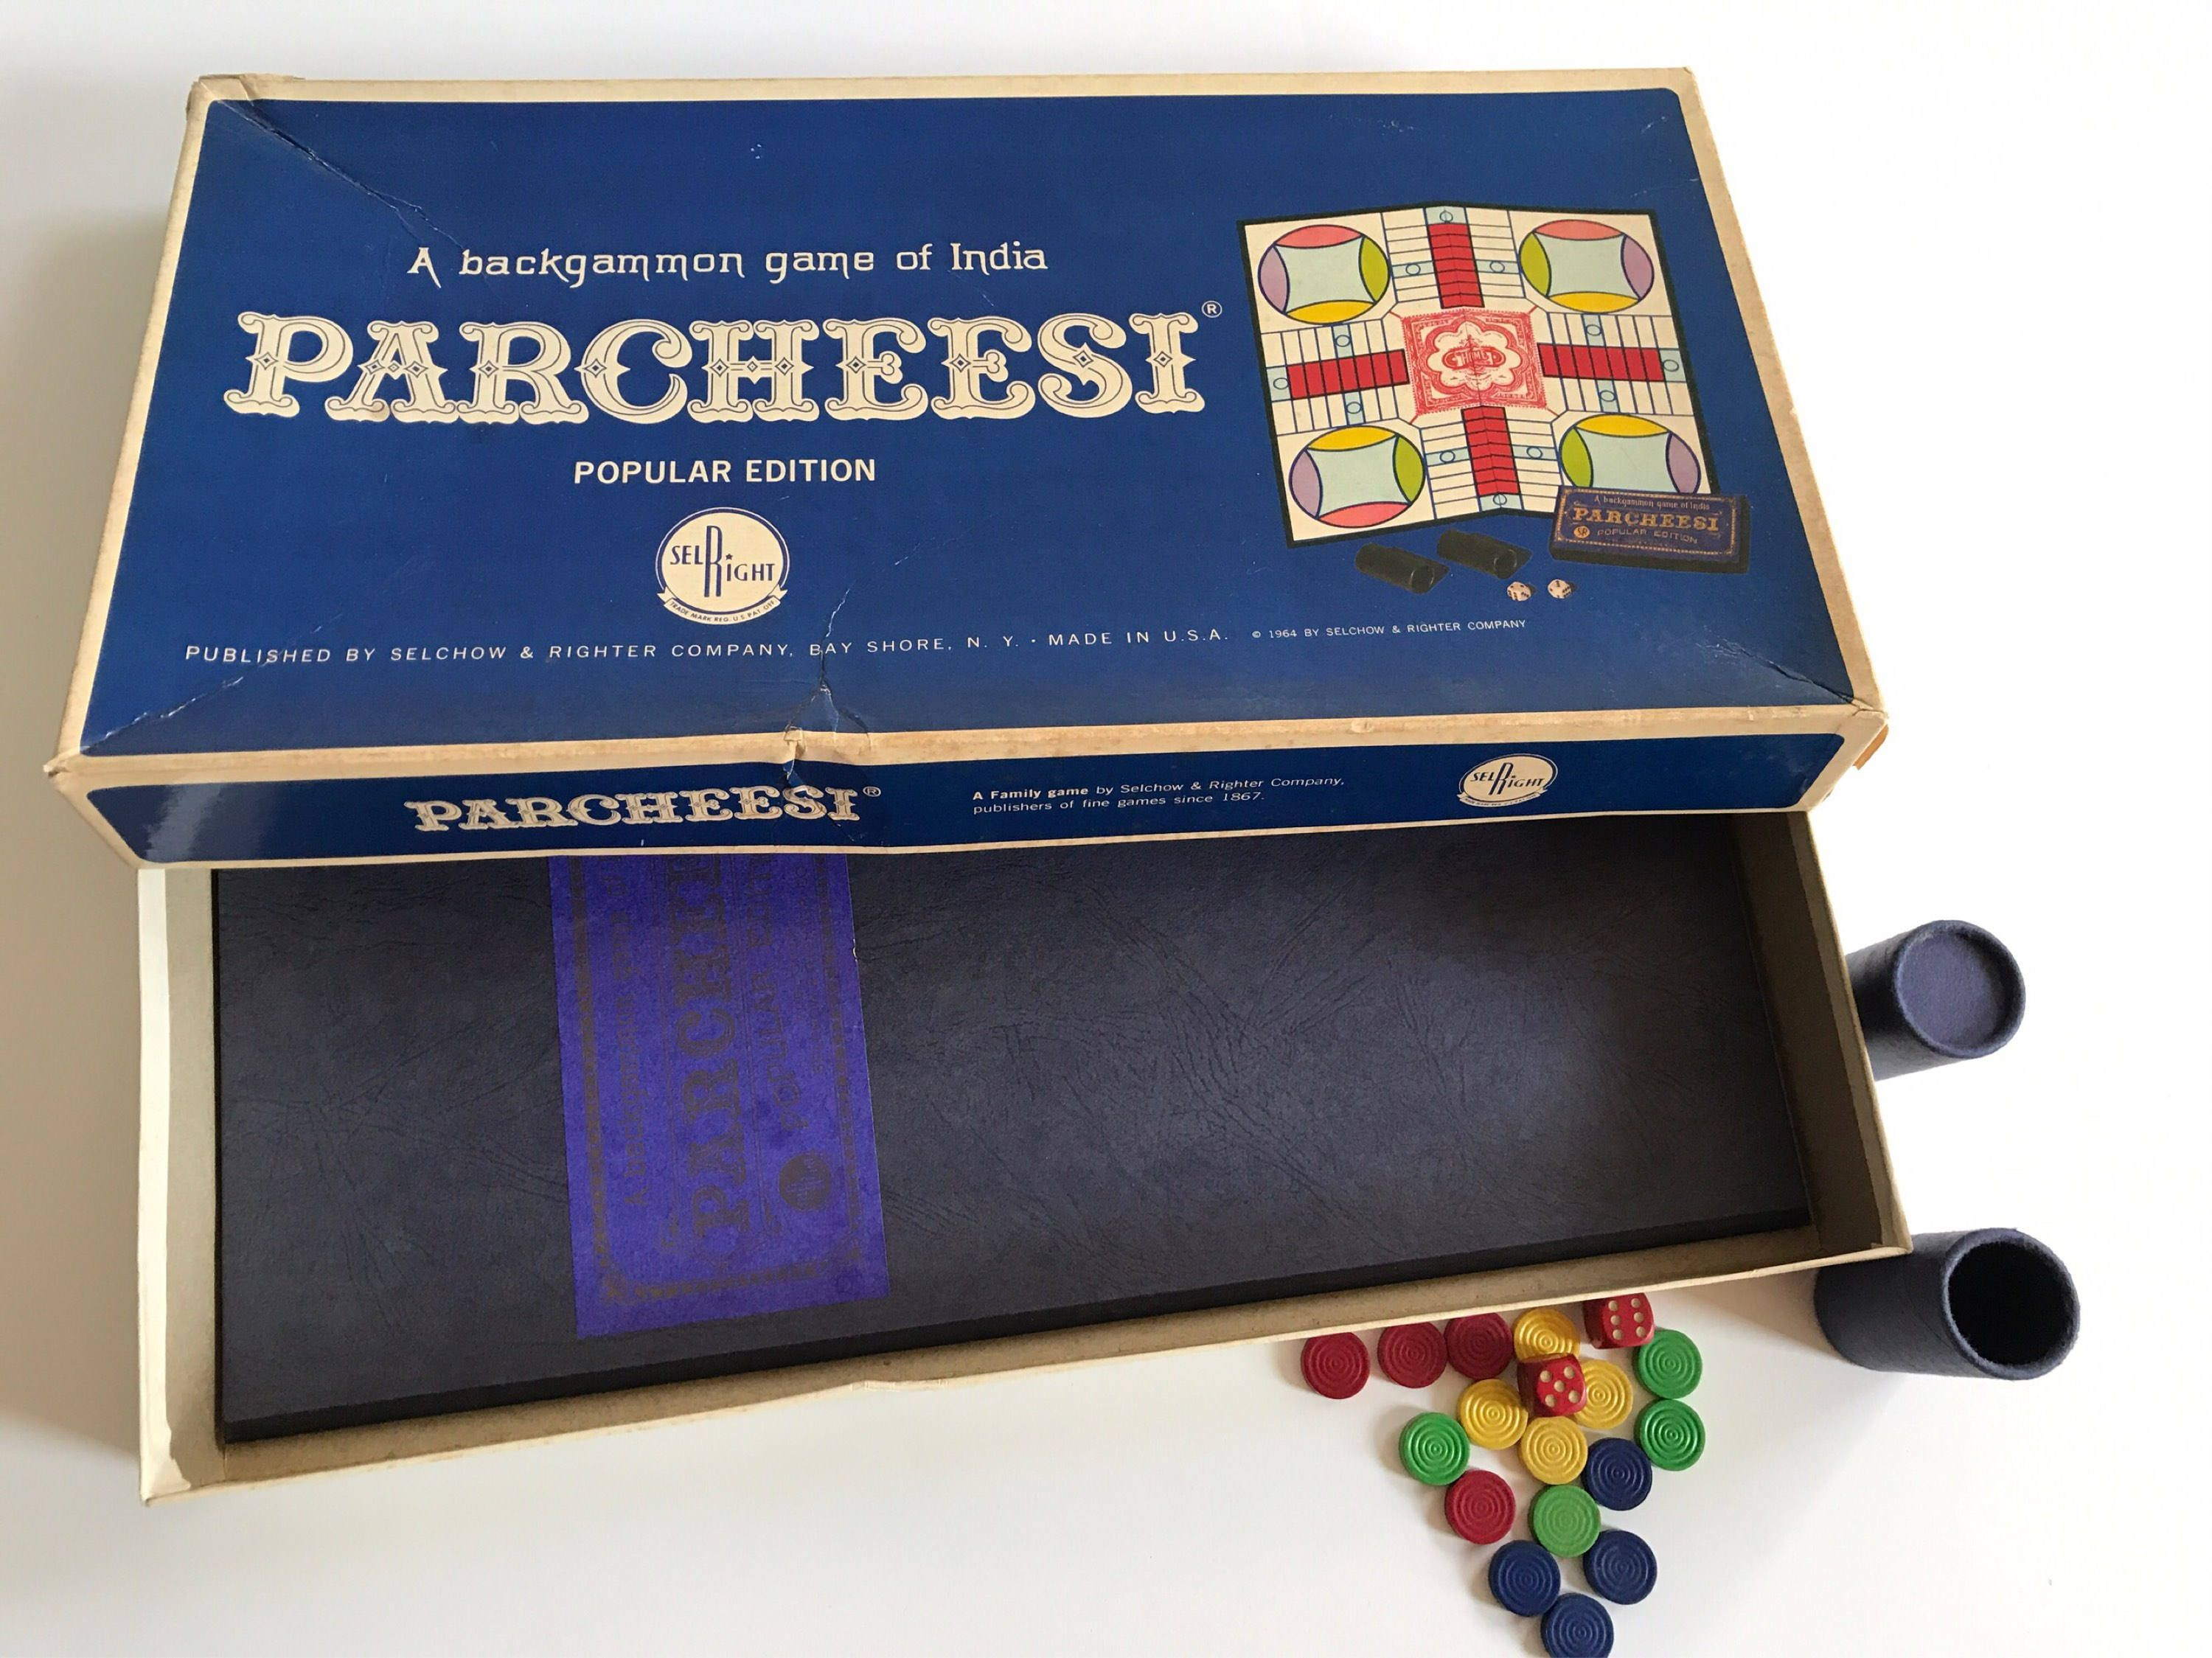 PARCHEESI Board Game Backgammon of India SelRight Salchow & Righter